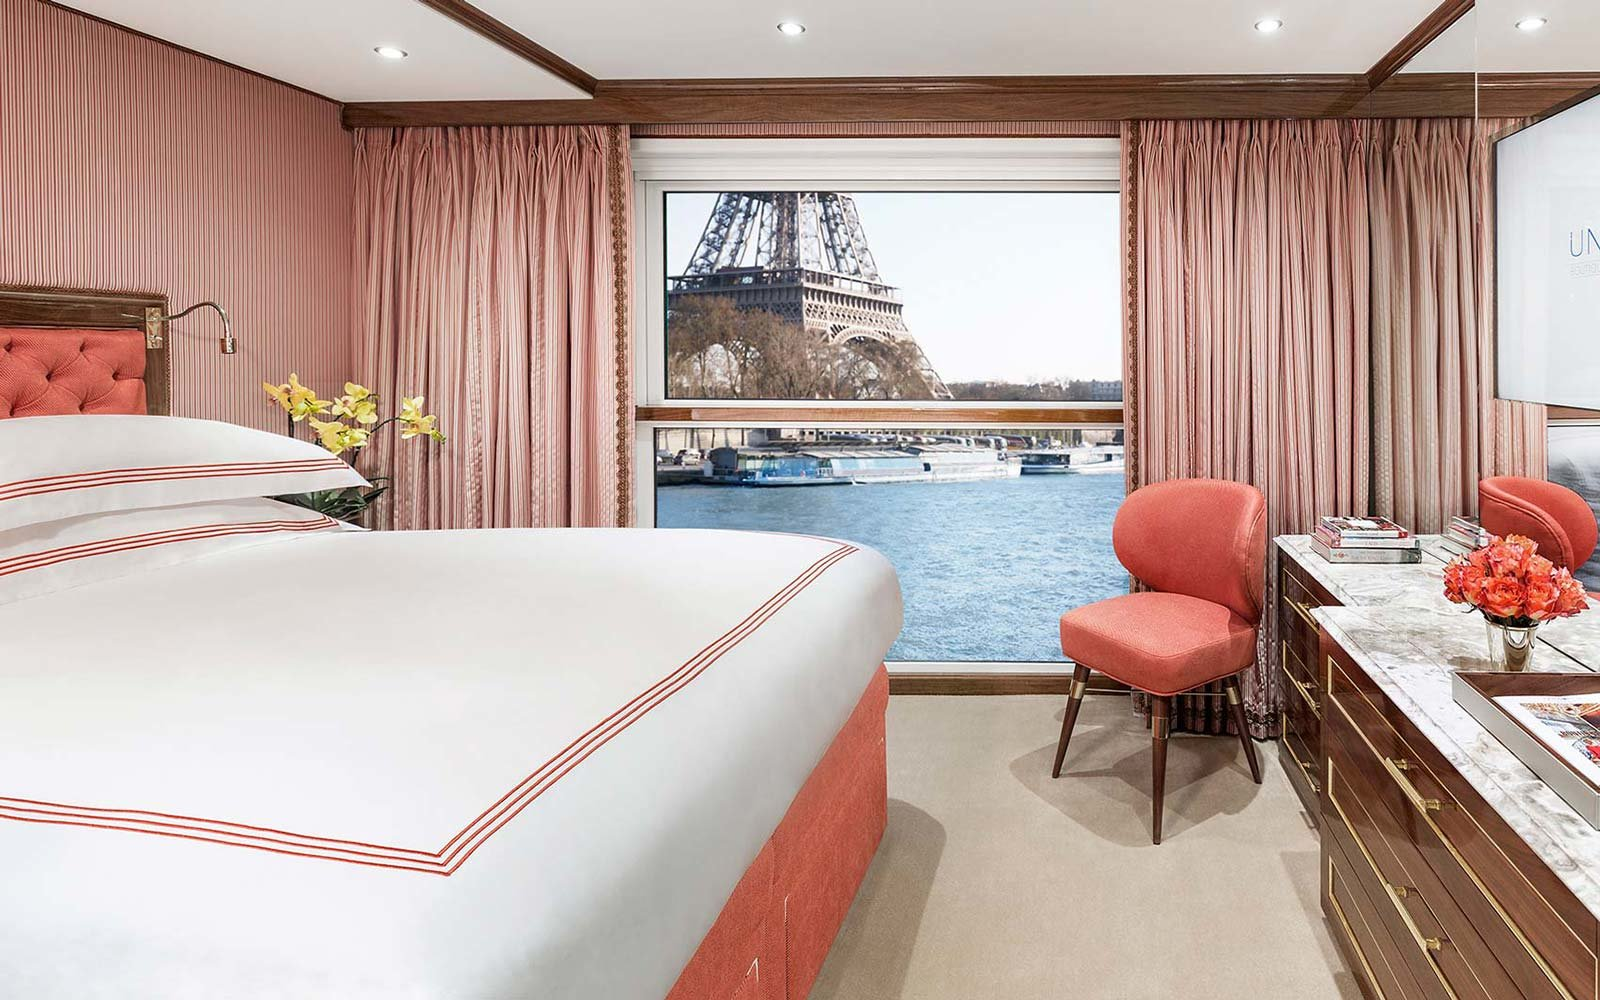 The Staterooms